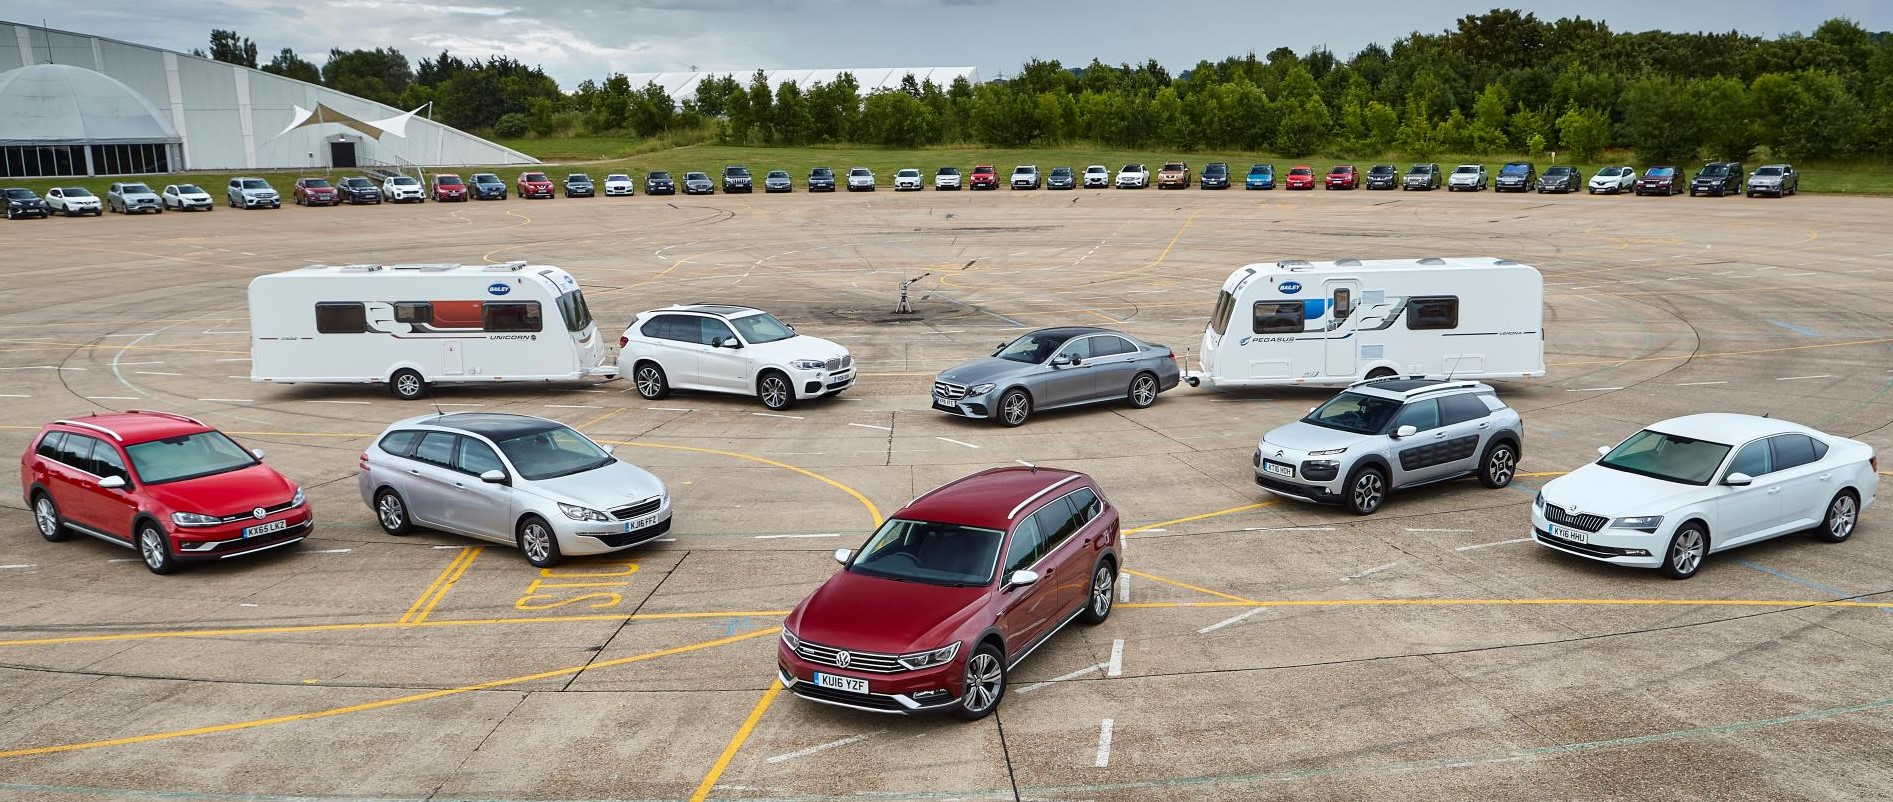 Tow Car Of The Year Best Cars For Pulling A Caravan